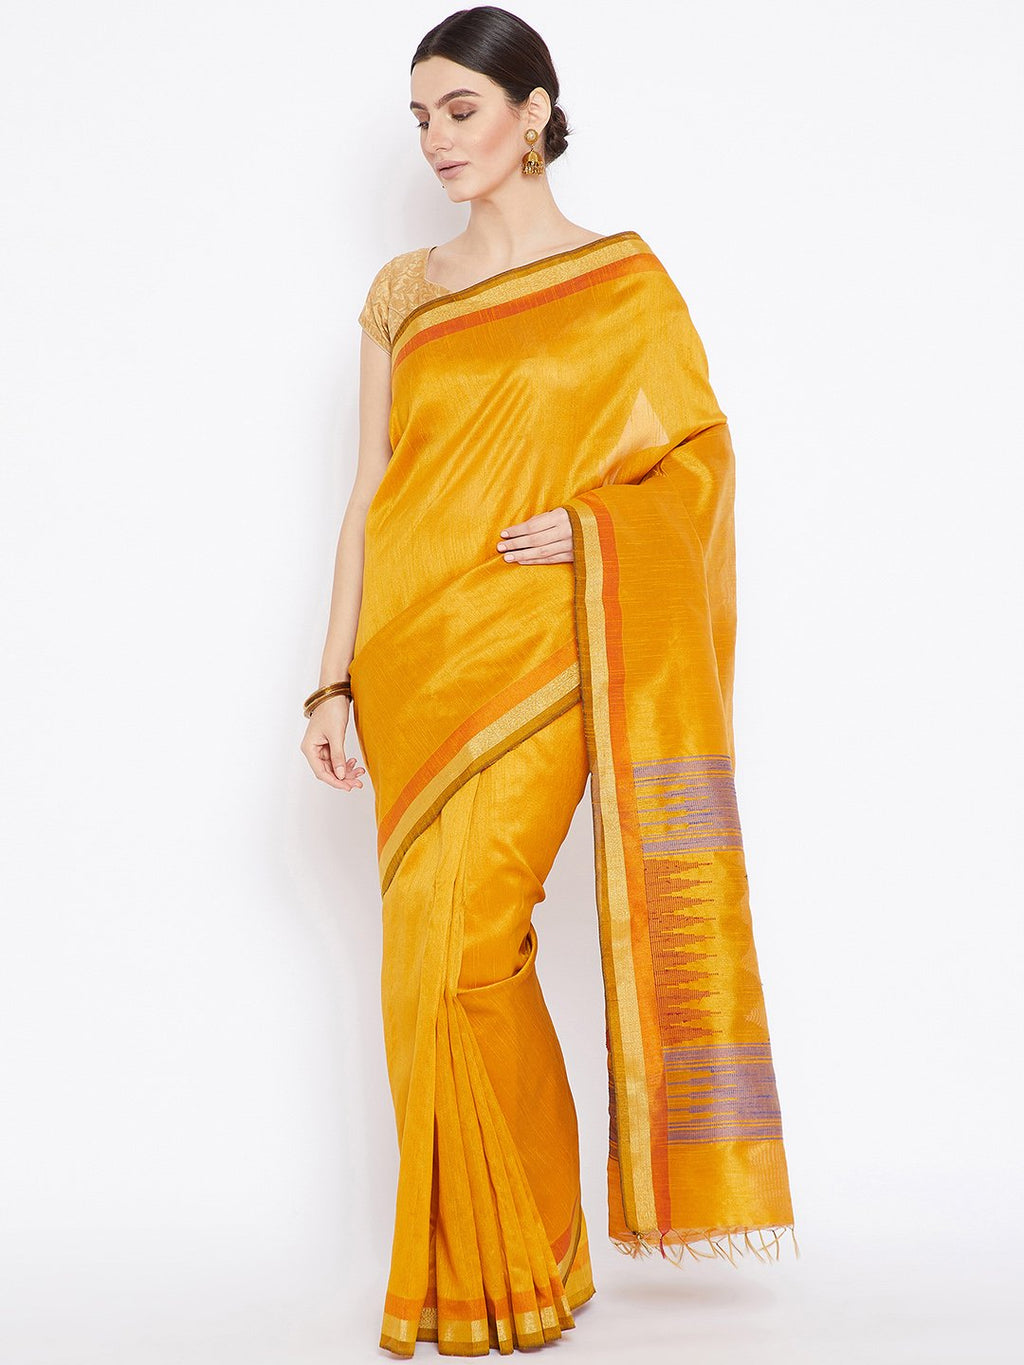 Gold-Coloured Tussar Woven Design Handloom Saree-Saree-Kalakari India-PRTUSA0009-Ahimsa Silk, Chattisgarh Kosa, Cruelty Free, Geographical Indication, Hand Woven, Sarees, Silk, Sustainable Fabrics, Traditional Weave, Tussar-[Linen,Ethnic,wear,Fashionista,Handloom,Handicraft,Indigo,blockprint,block,print,Cotton,Chanderi,Blue, latest,classy,party,bollywood,trendy,summer,style,traditional,formal,elegant,unique,style,hand,block,print, dabu,booti,gift,present,glamorous,affordable,collectible,Sari,Sar